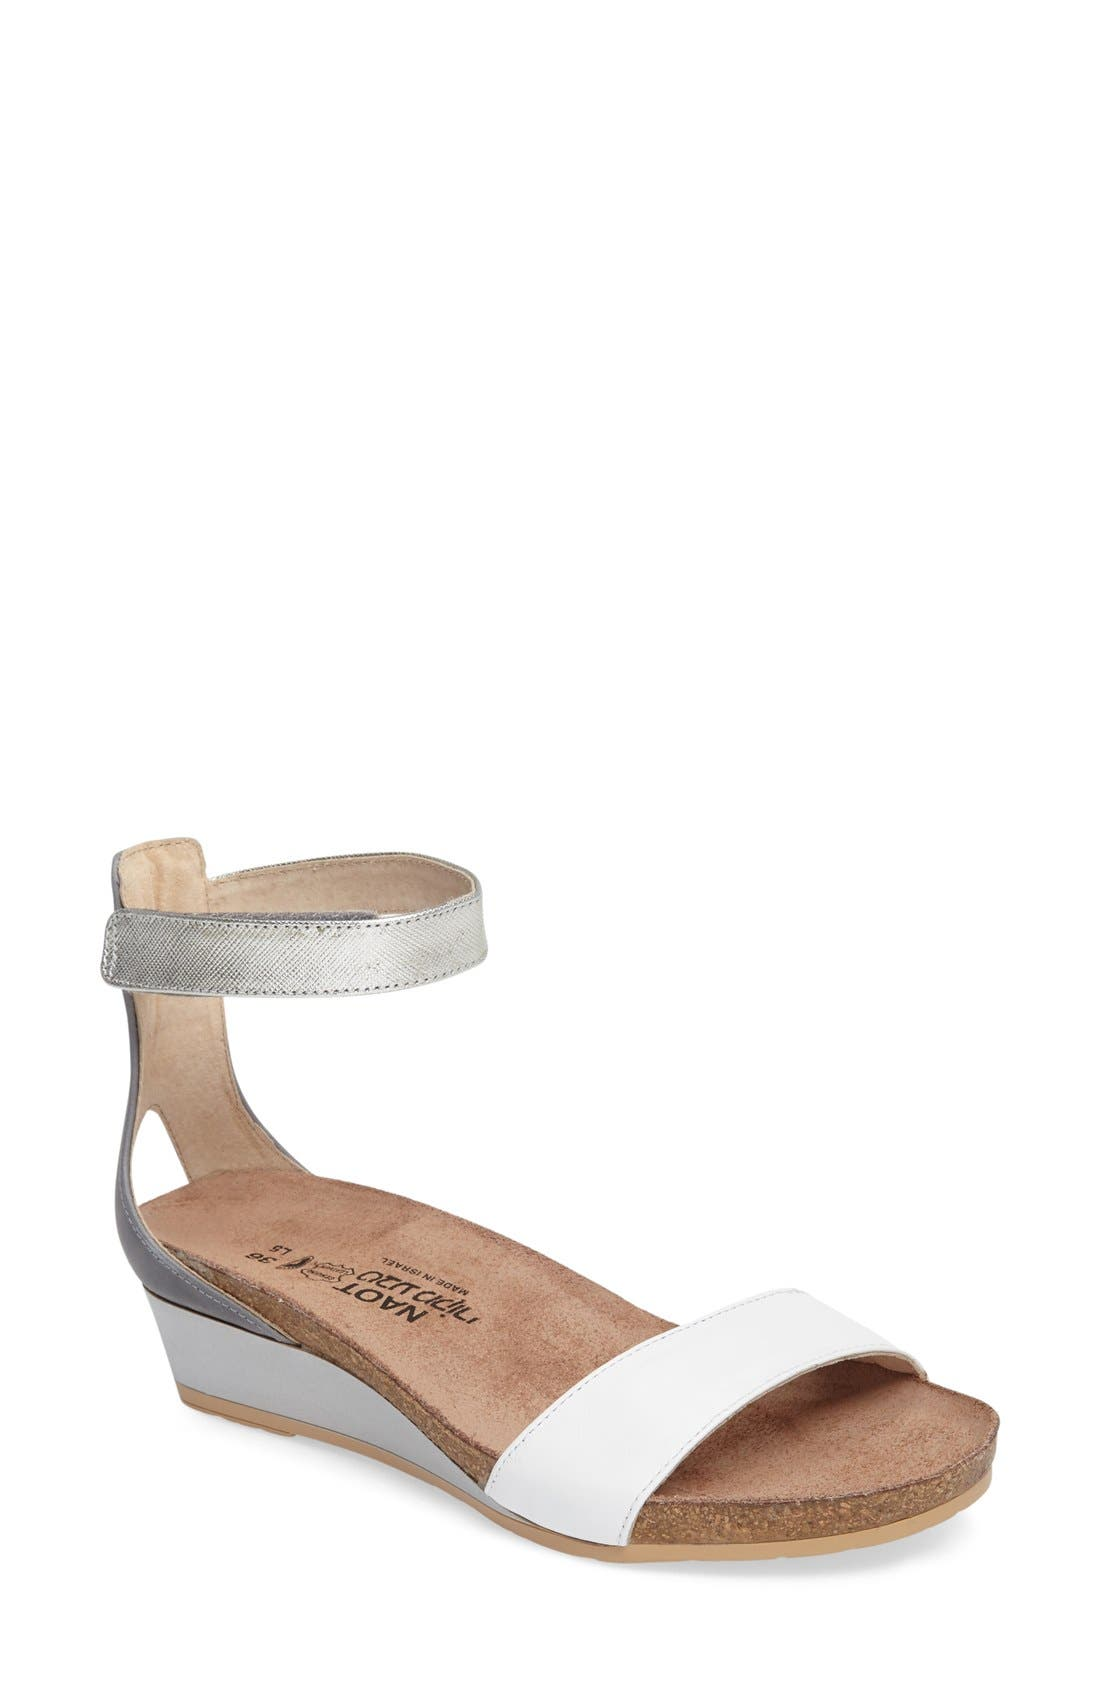 Alternate Image 1 Selected - Naot 'Pixie' Sandal (Women)